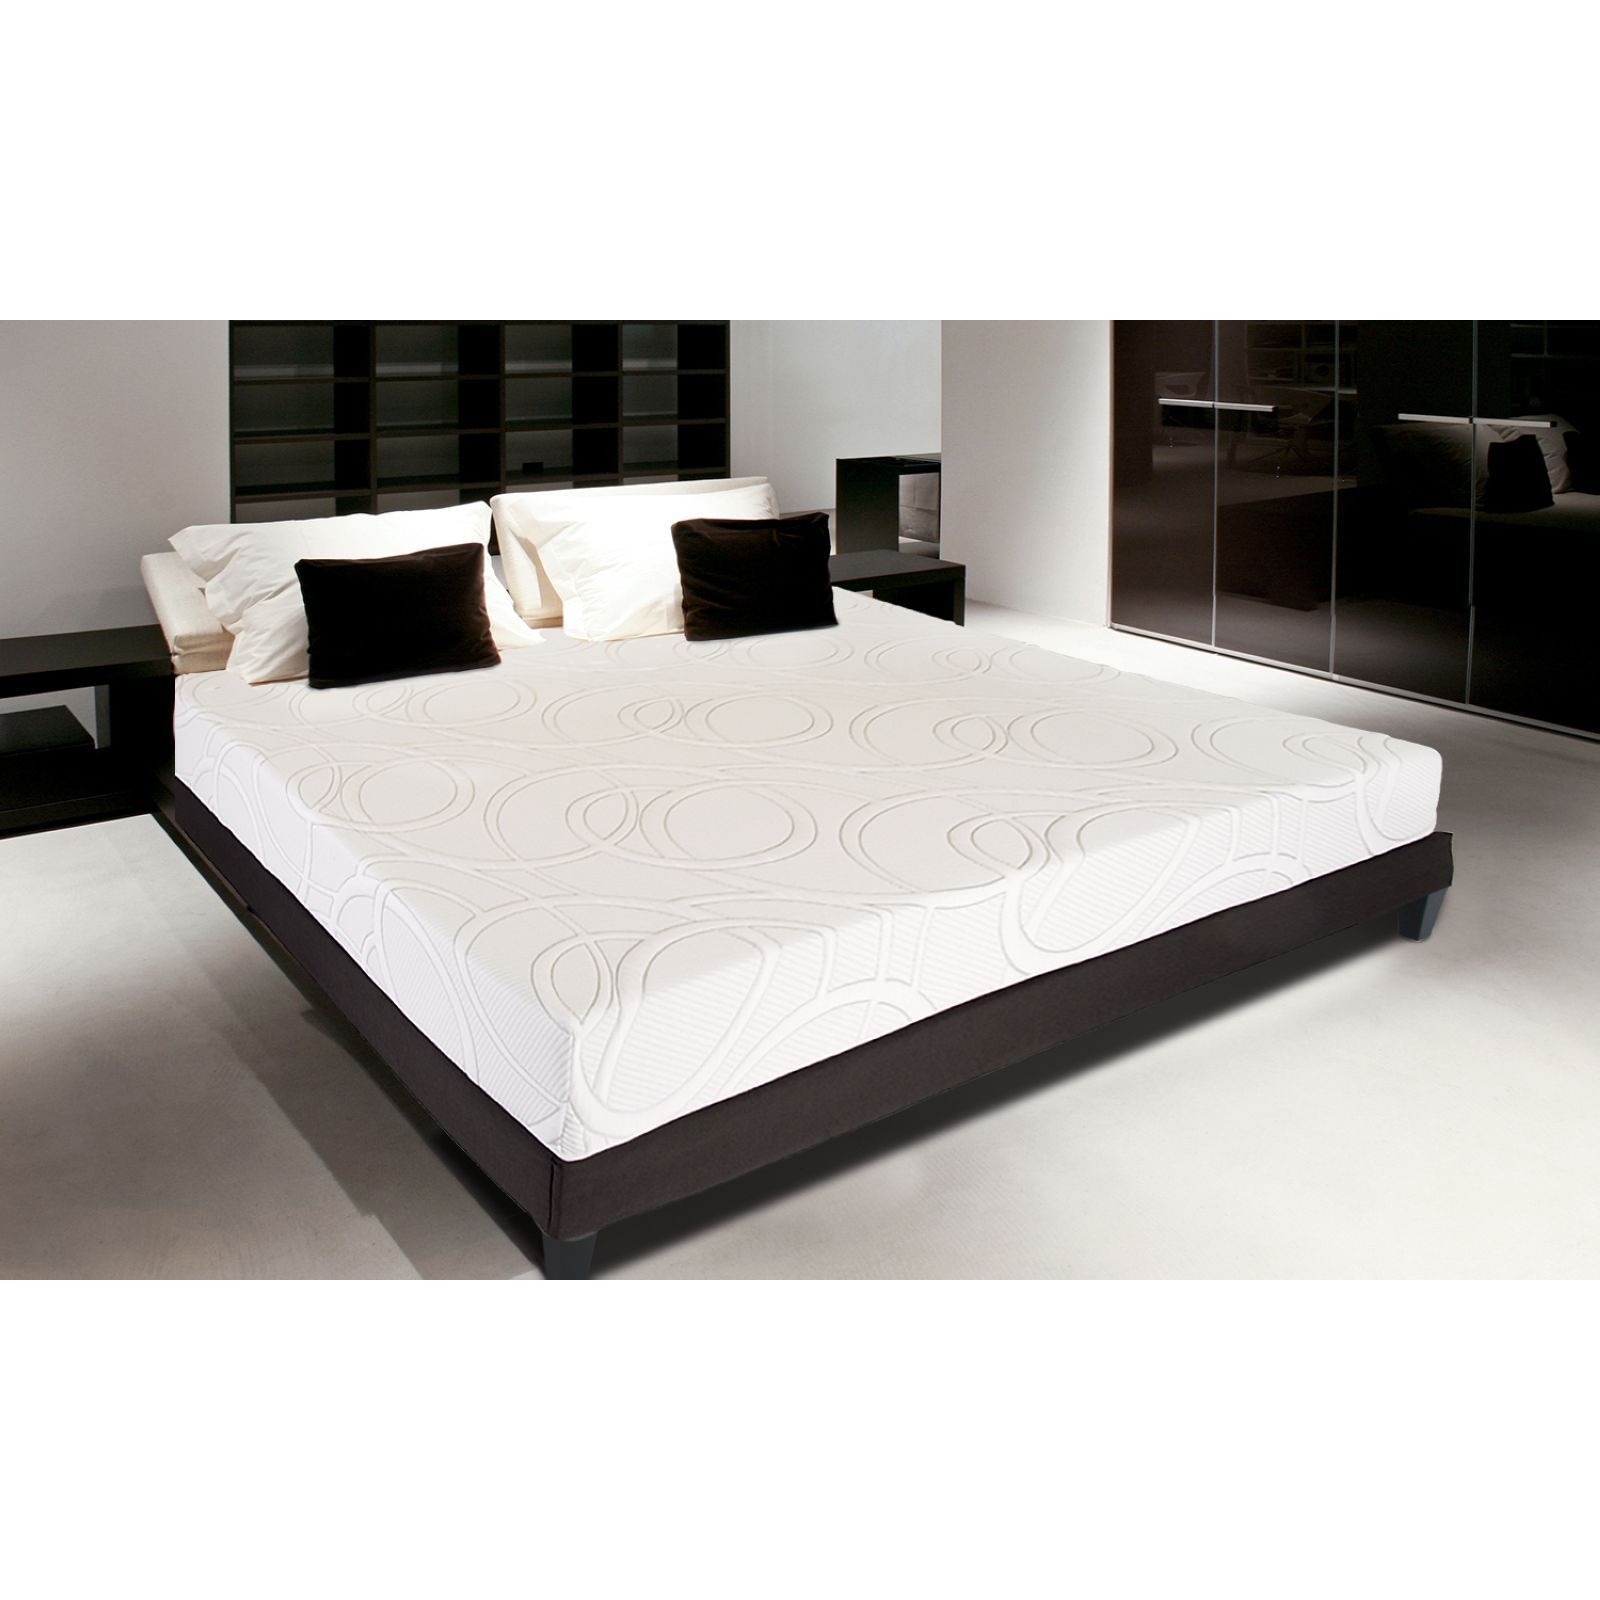 nupsia senso gel luxury ensemble matelas sommier brandalley. Black Bedroom Furniture Sets. Home Design Ideas